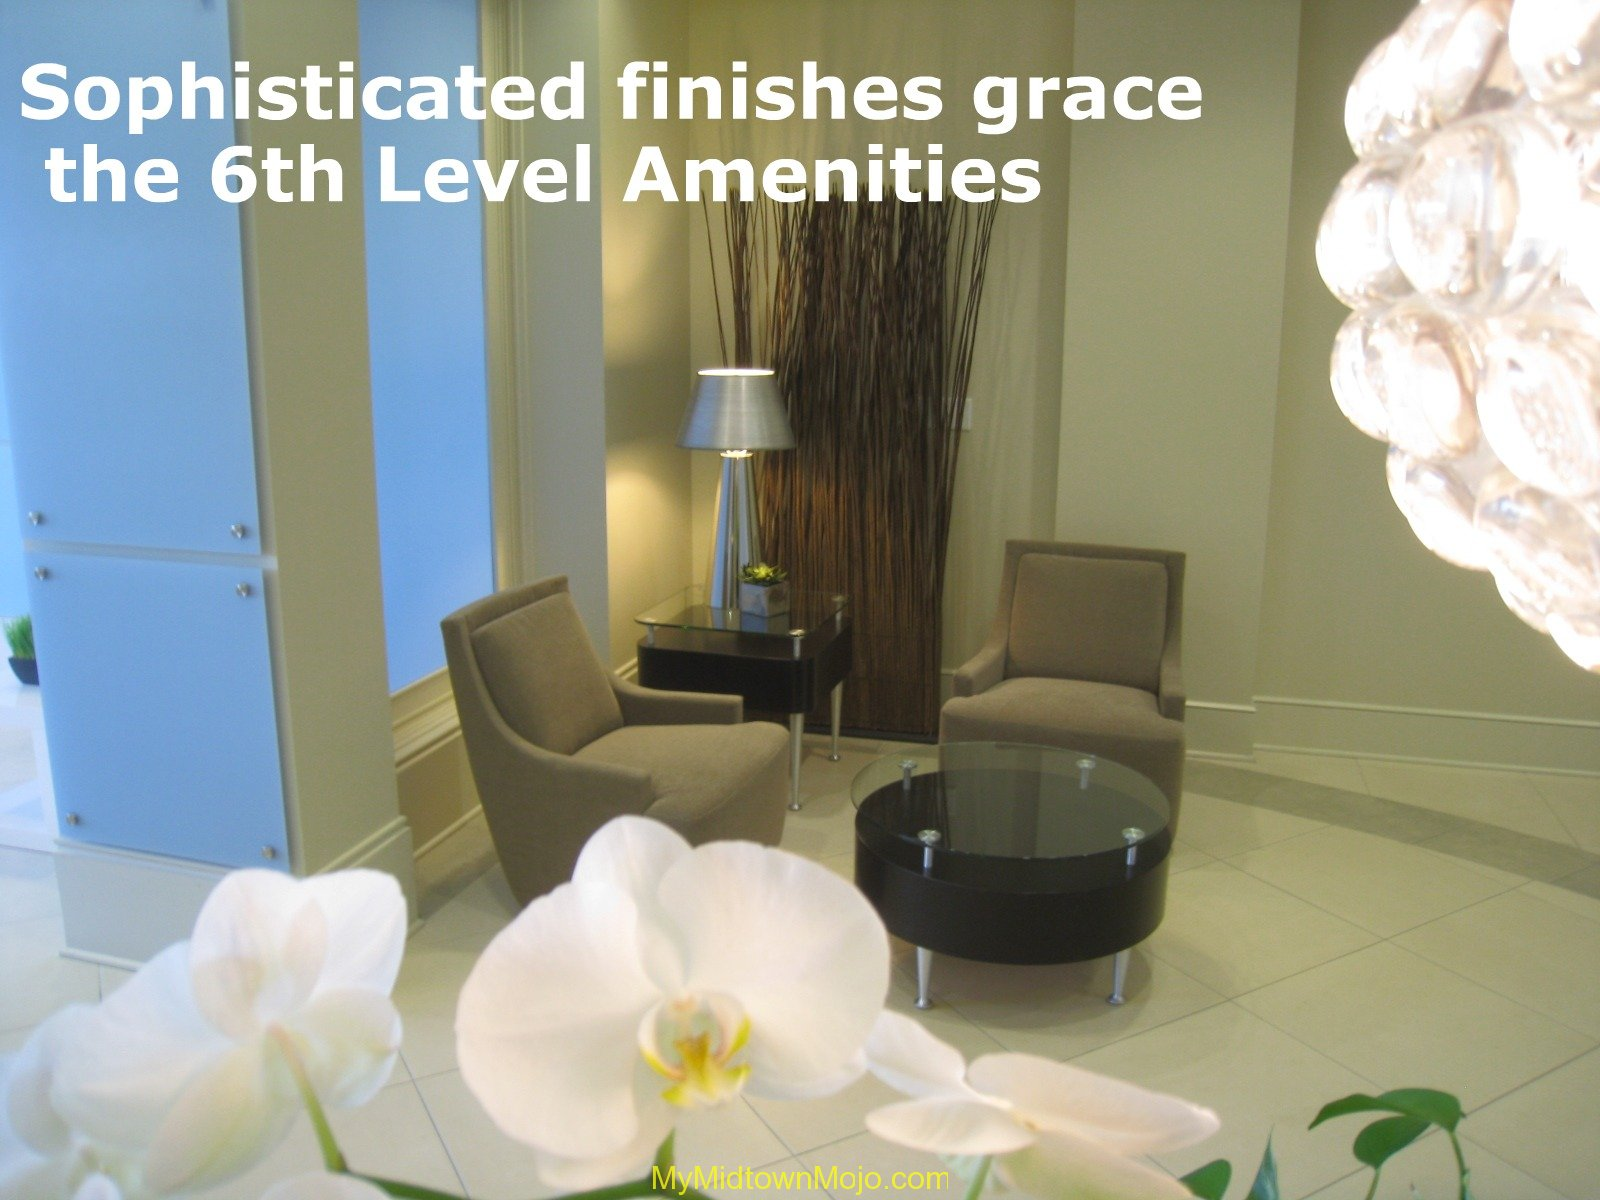 luxe-midtown-amenitiespk